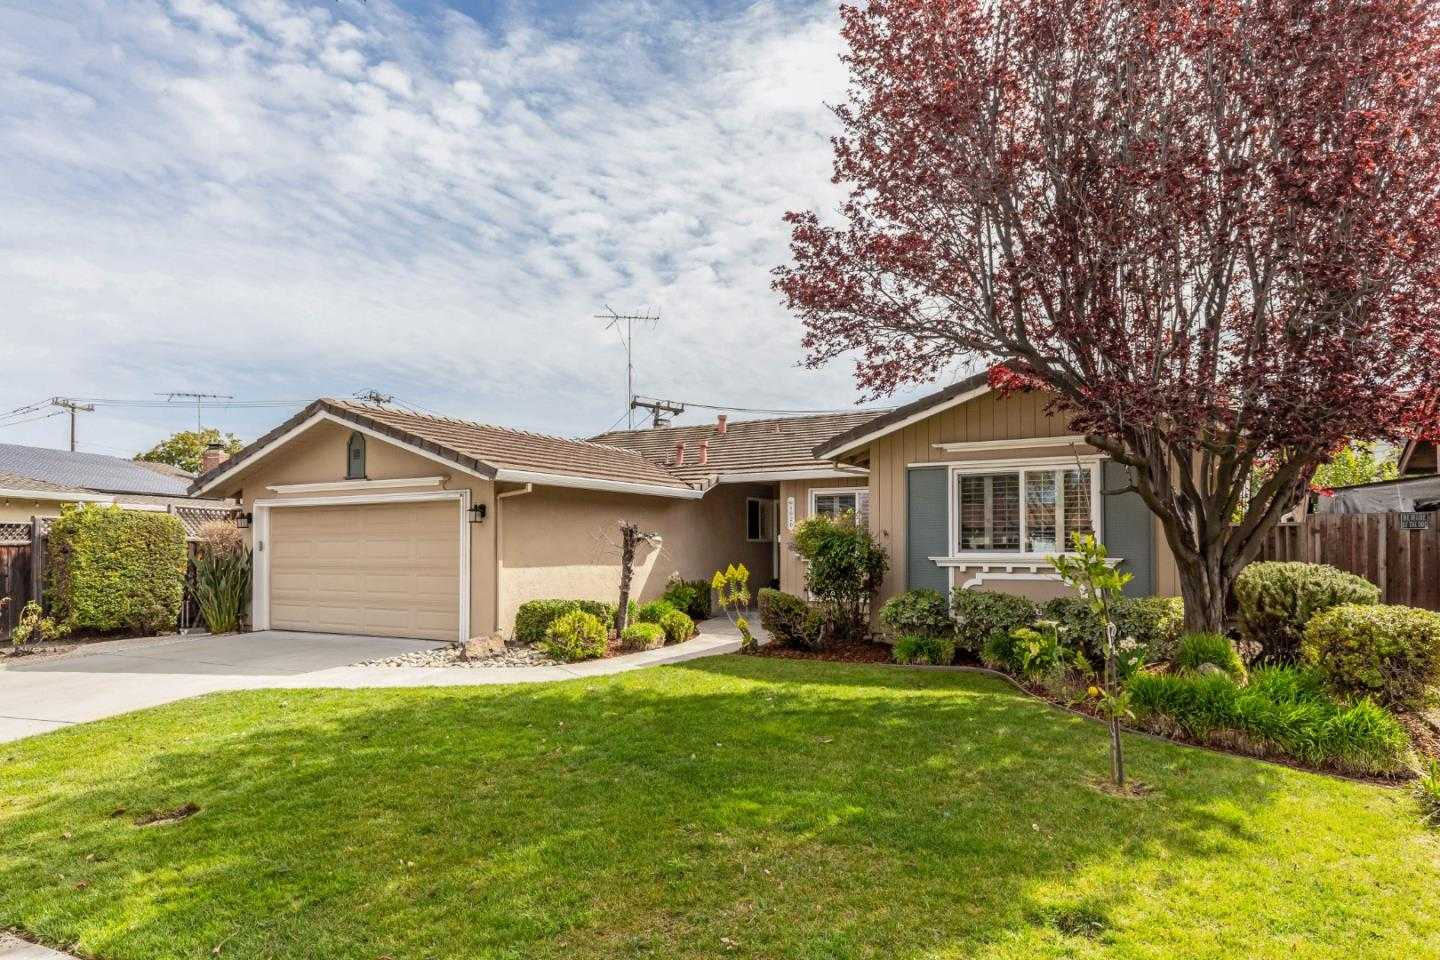 $1,849,000 - 4Br/2Ba -  for Sale in San Jose